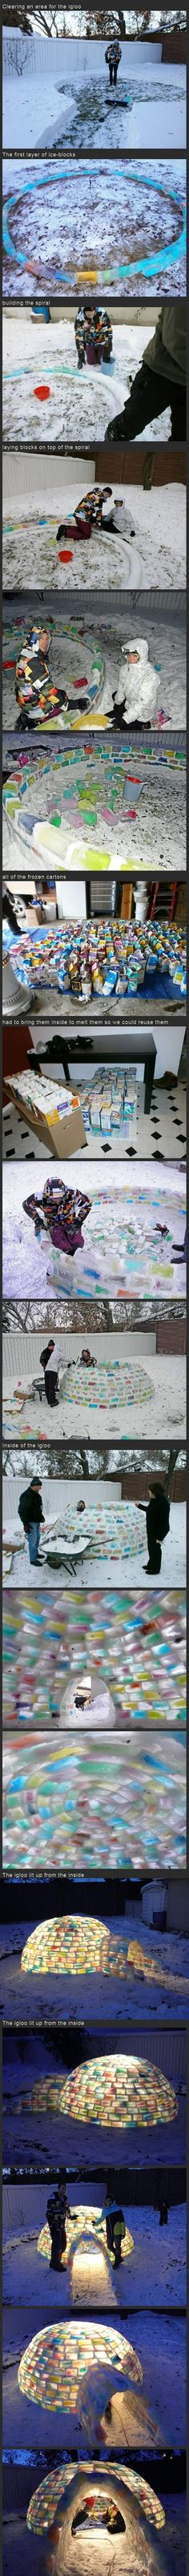 Someday...How to Make an Awesome Igloo!